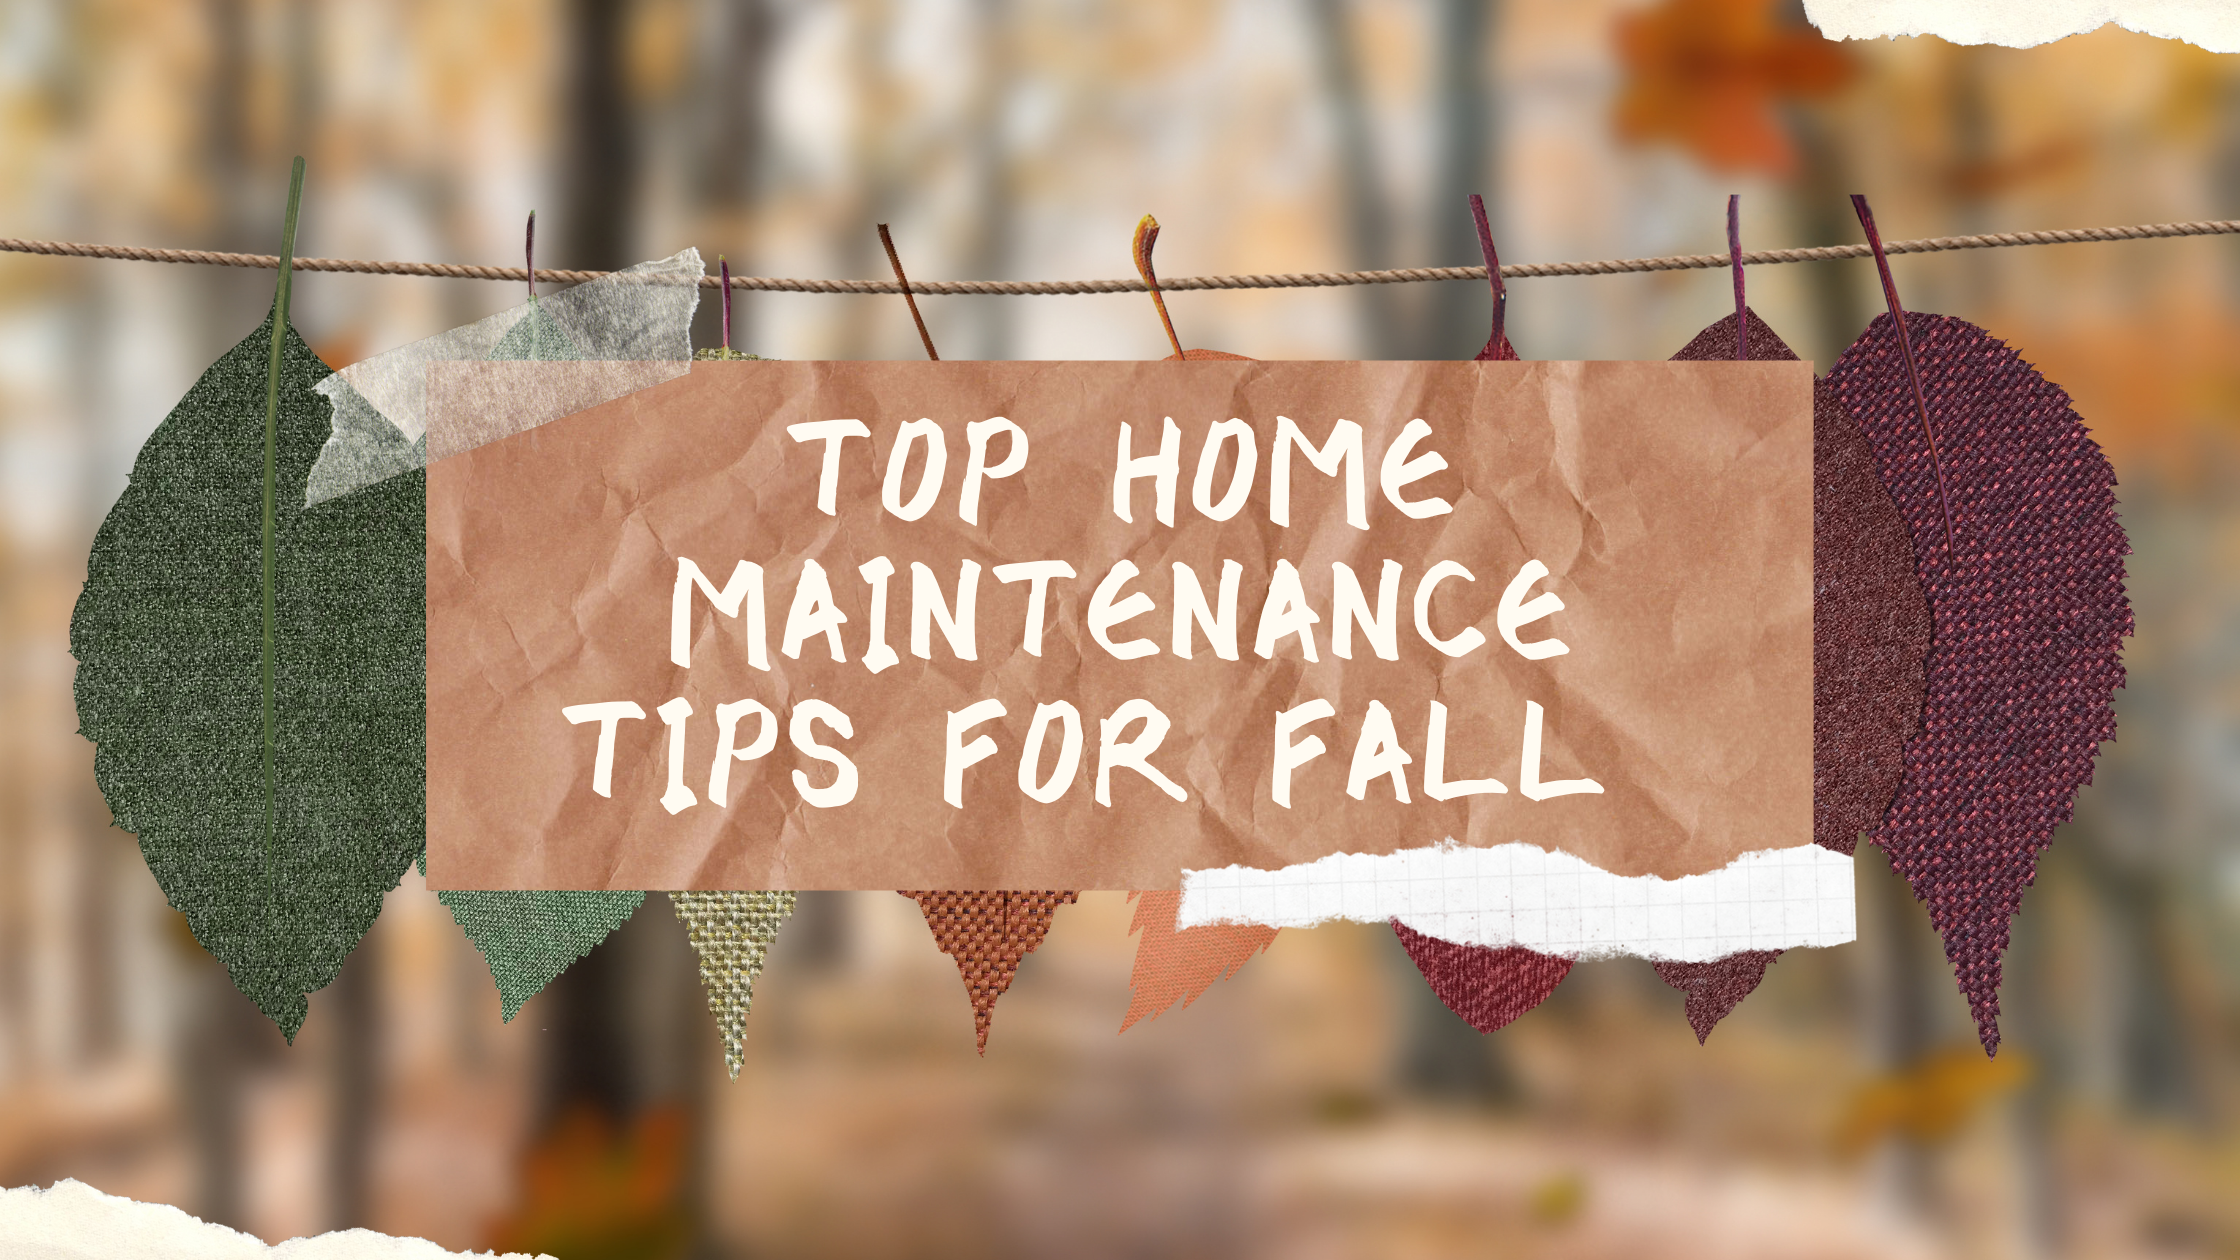 Top Home Maintenance Tips for Fall